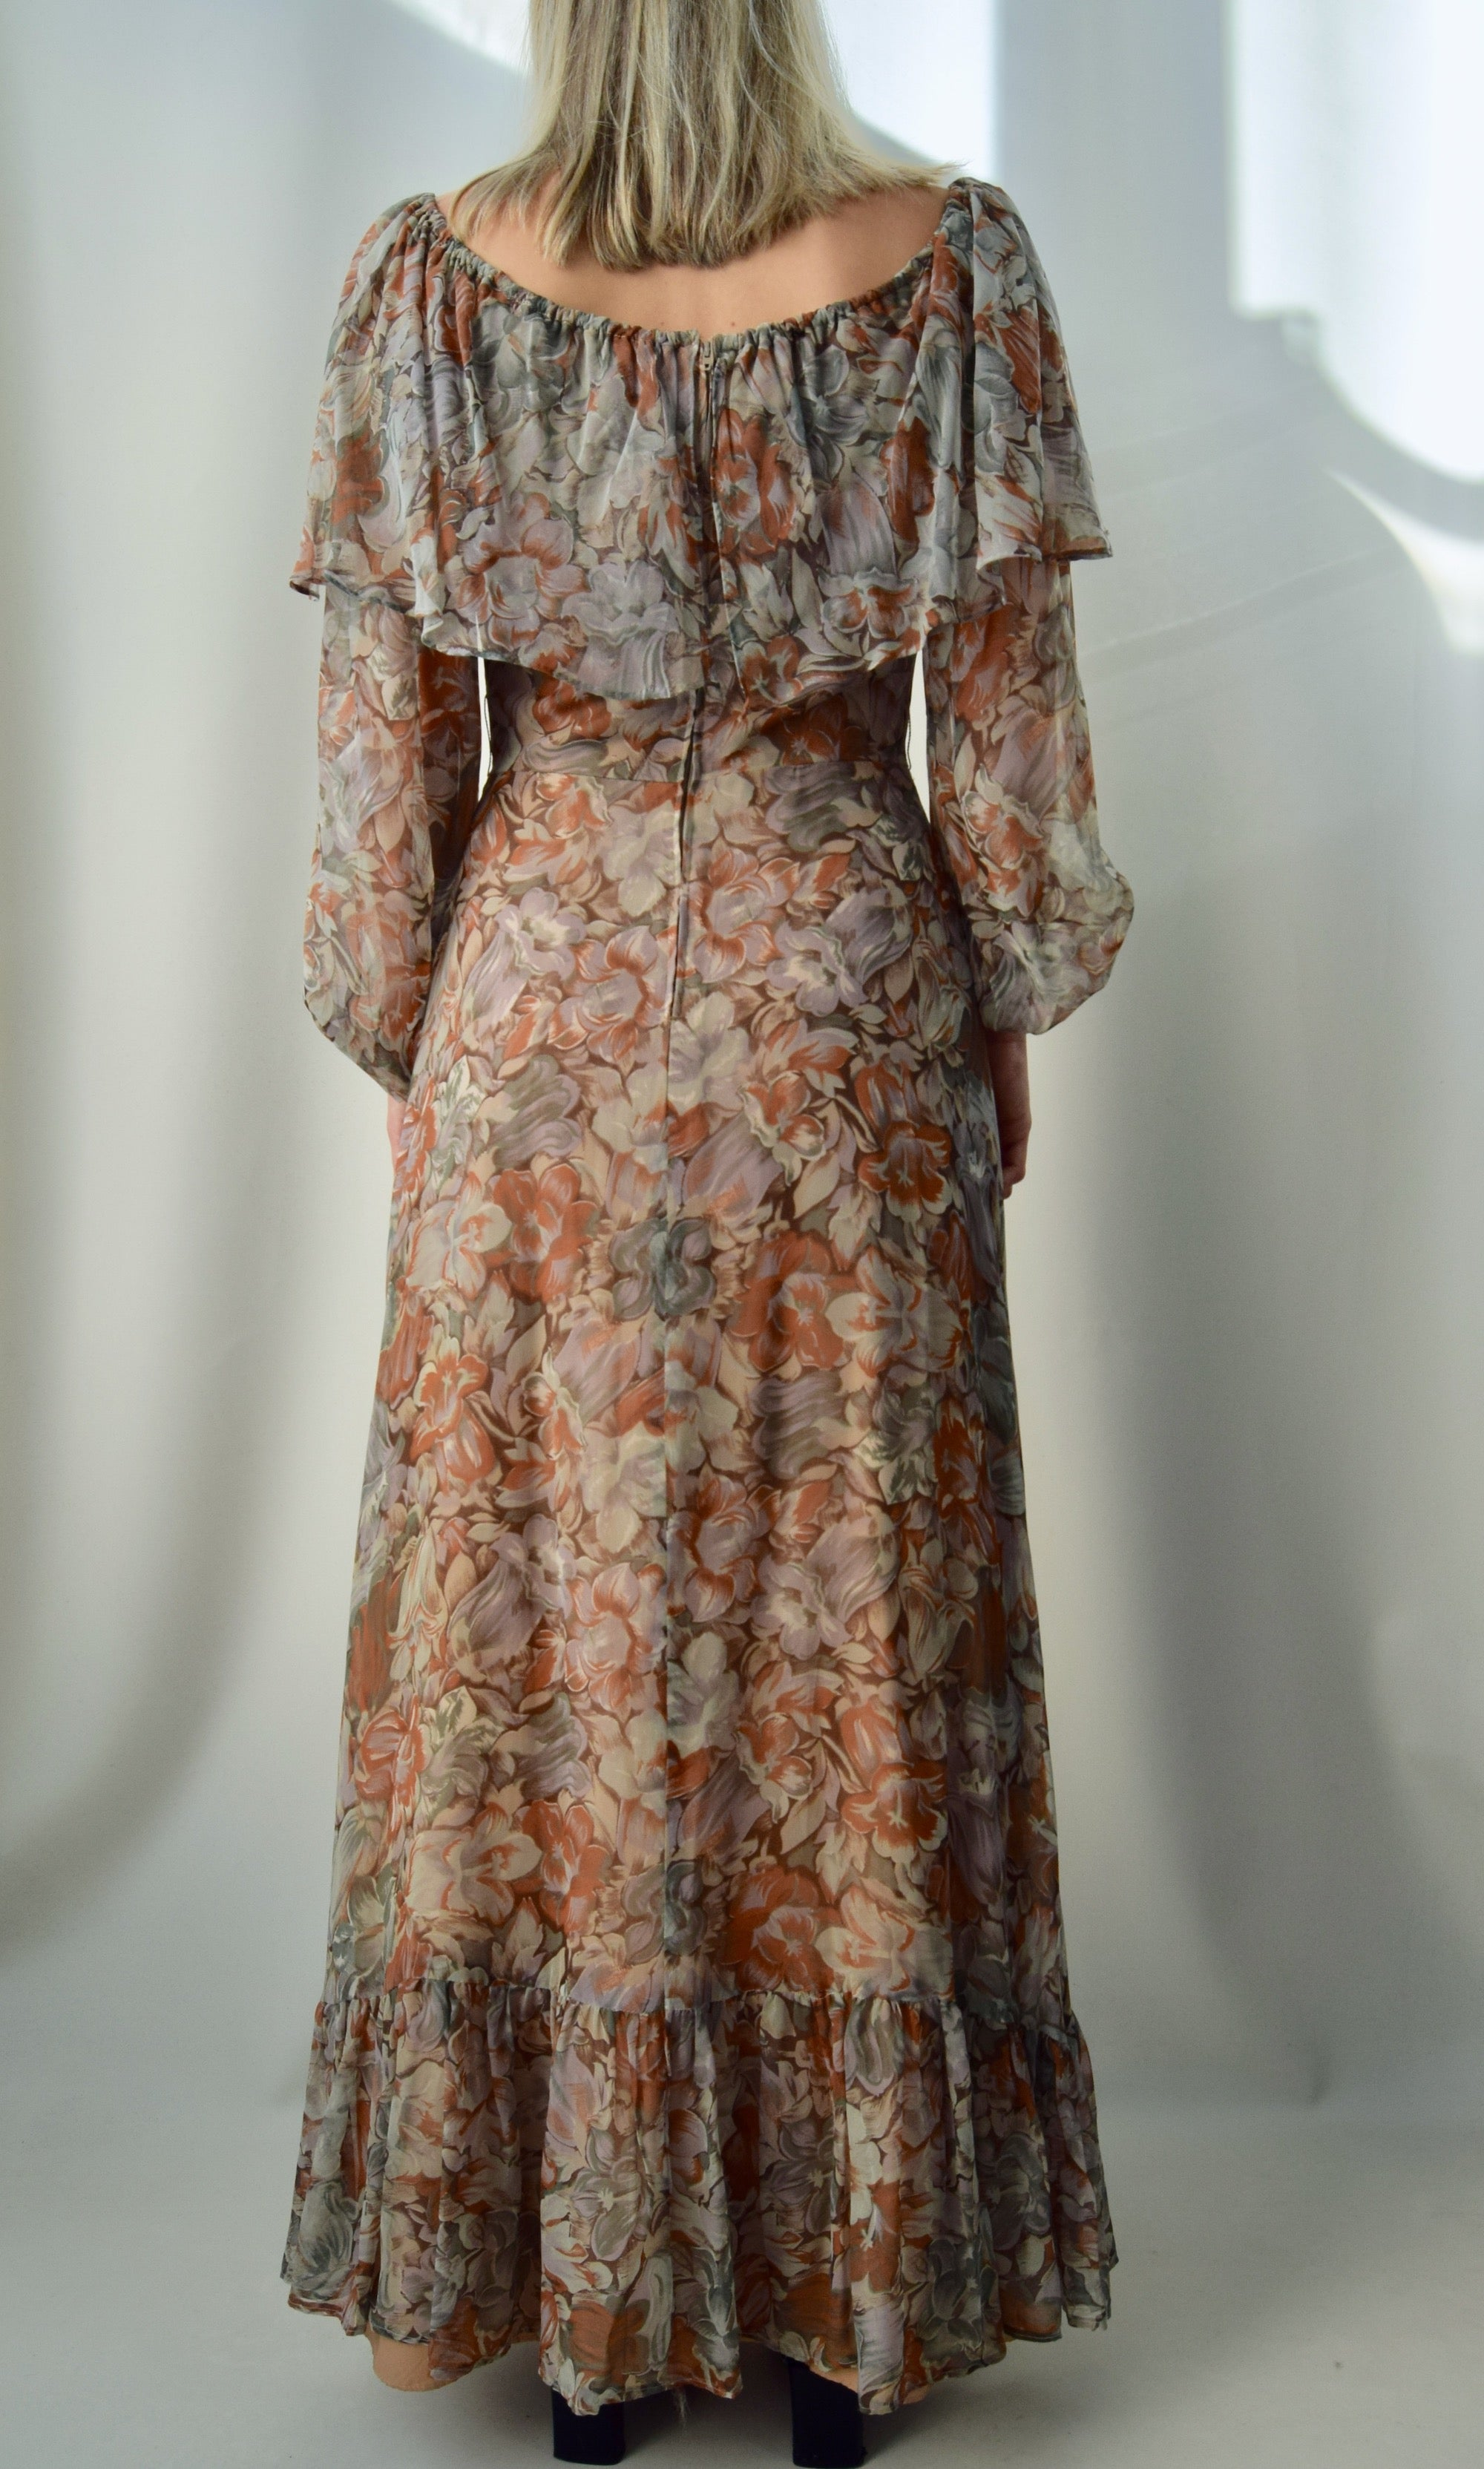 Muted Autumnal 70's Dress